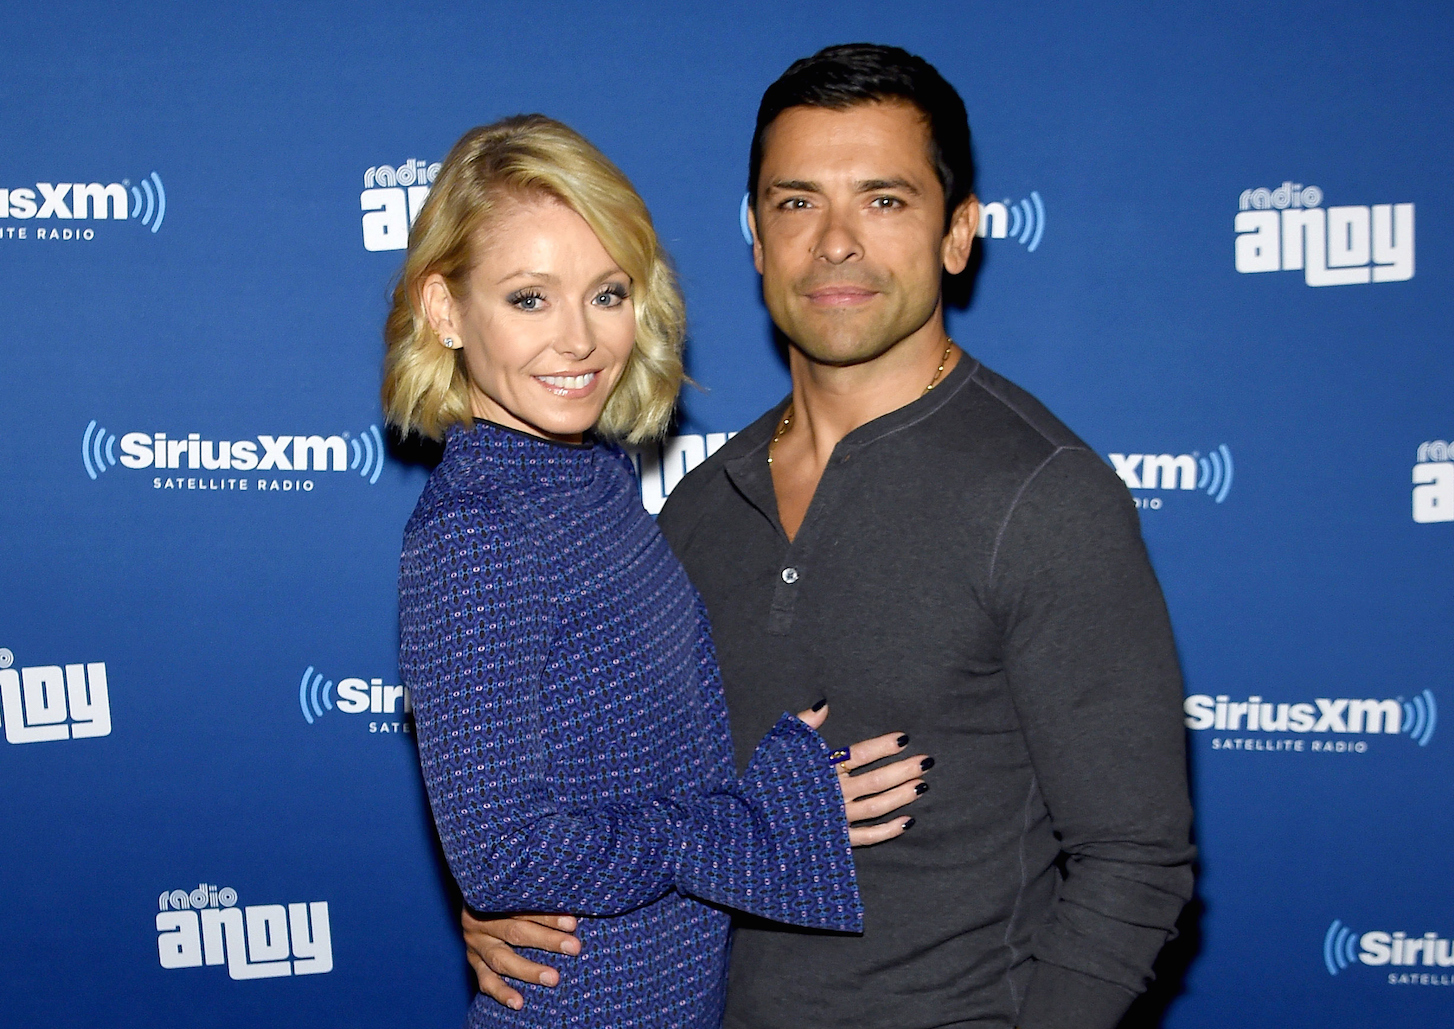 Kelly Ripa & Mark Consuelos - Getty